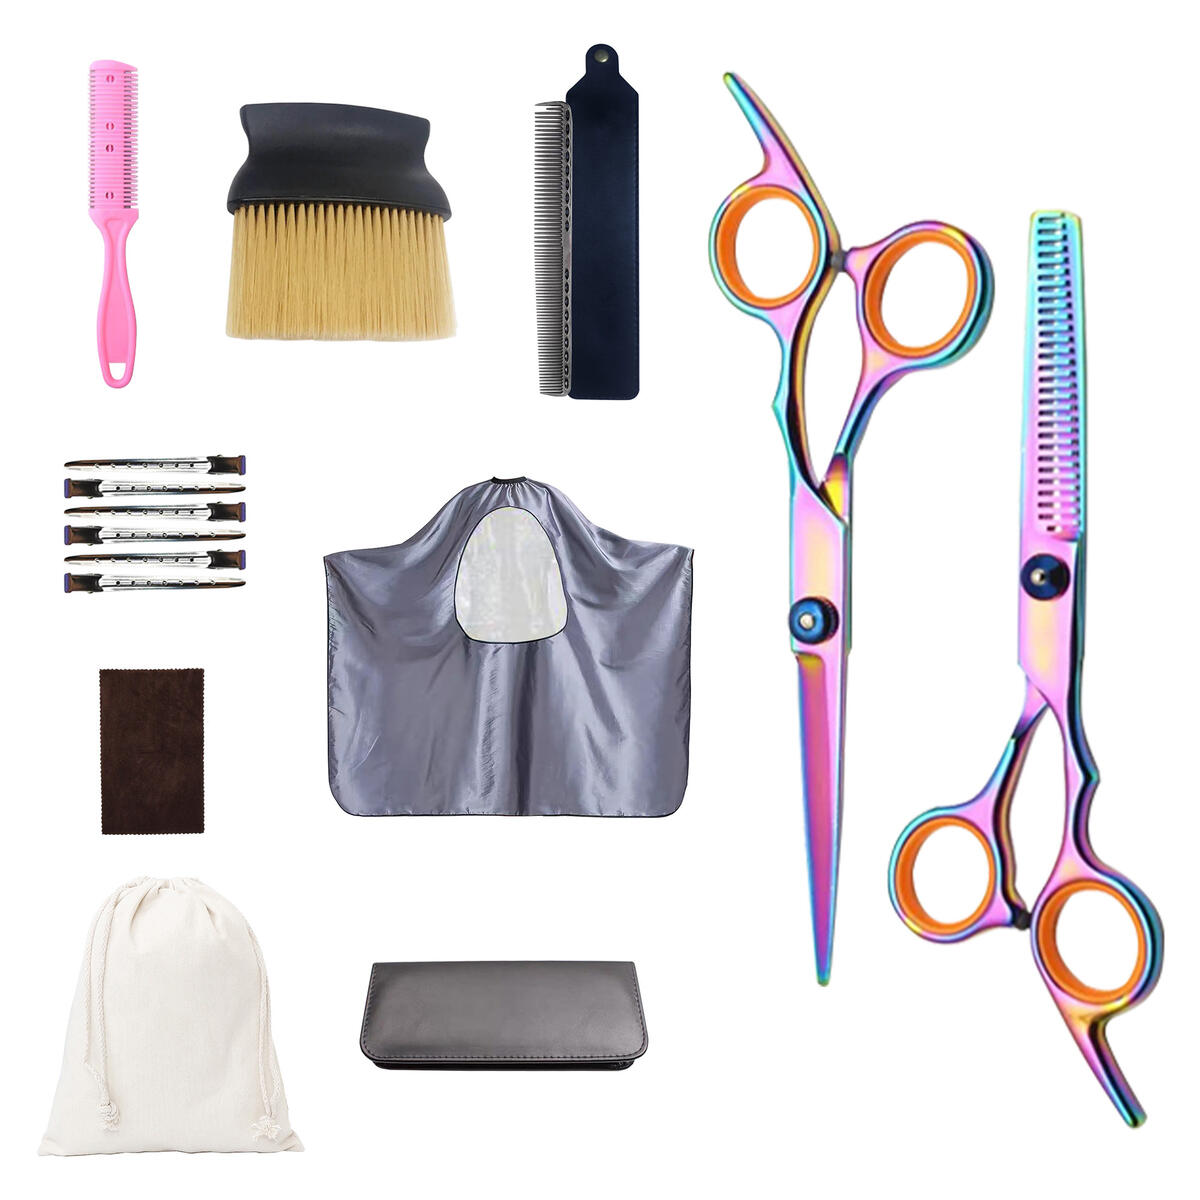 Professional Family Hair Cutting/Barber Scissors Shears 16pcs Set/Kit-Cutting Scissors,Thinning Scissors,Haircut Comb,Salon Cape,Haircut Cleaning Brush,Aluminum Grooming Comb,Hair Clips,Storage Bag